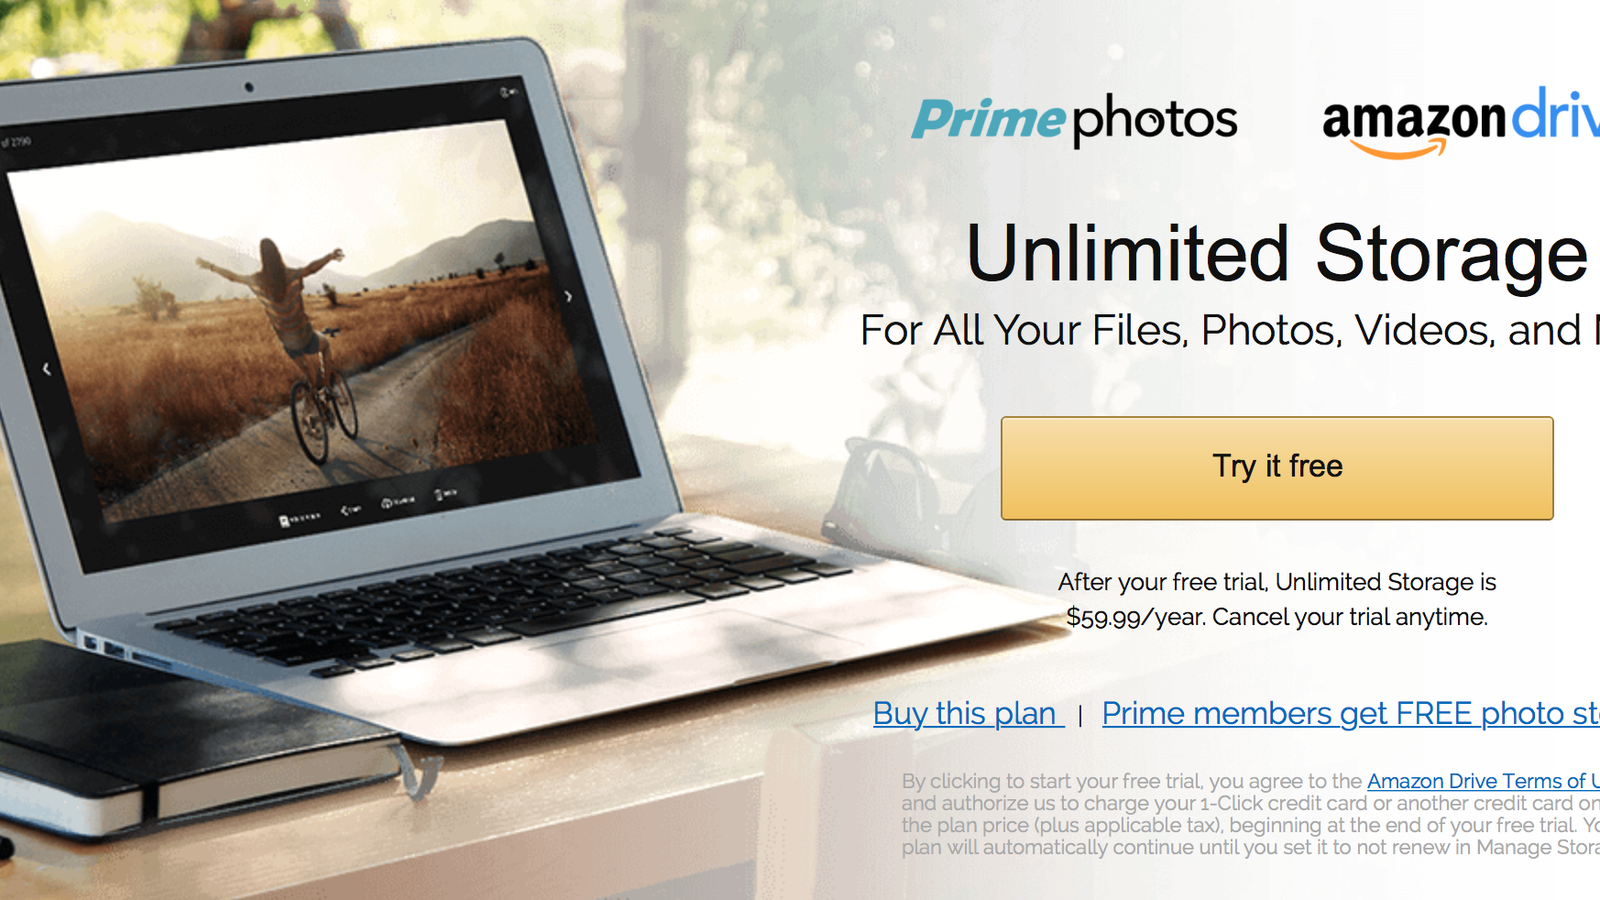 amazon drive and prime photos terms of use